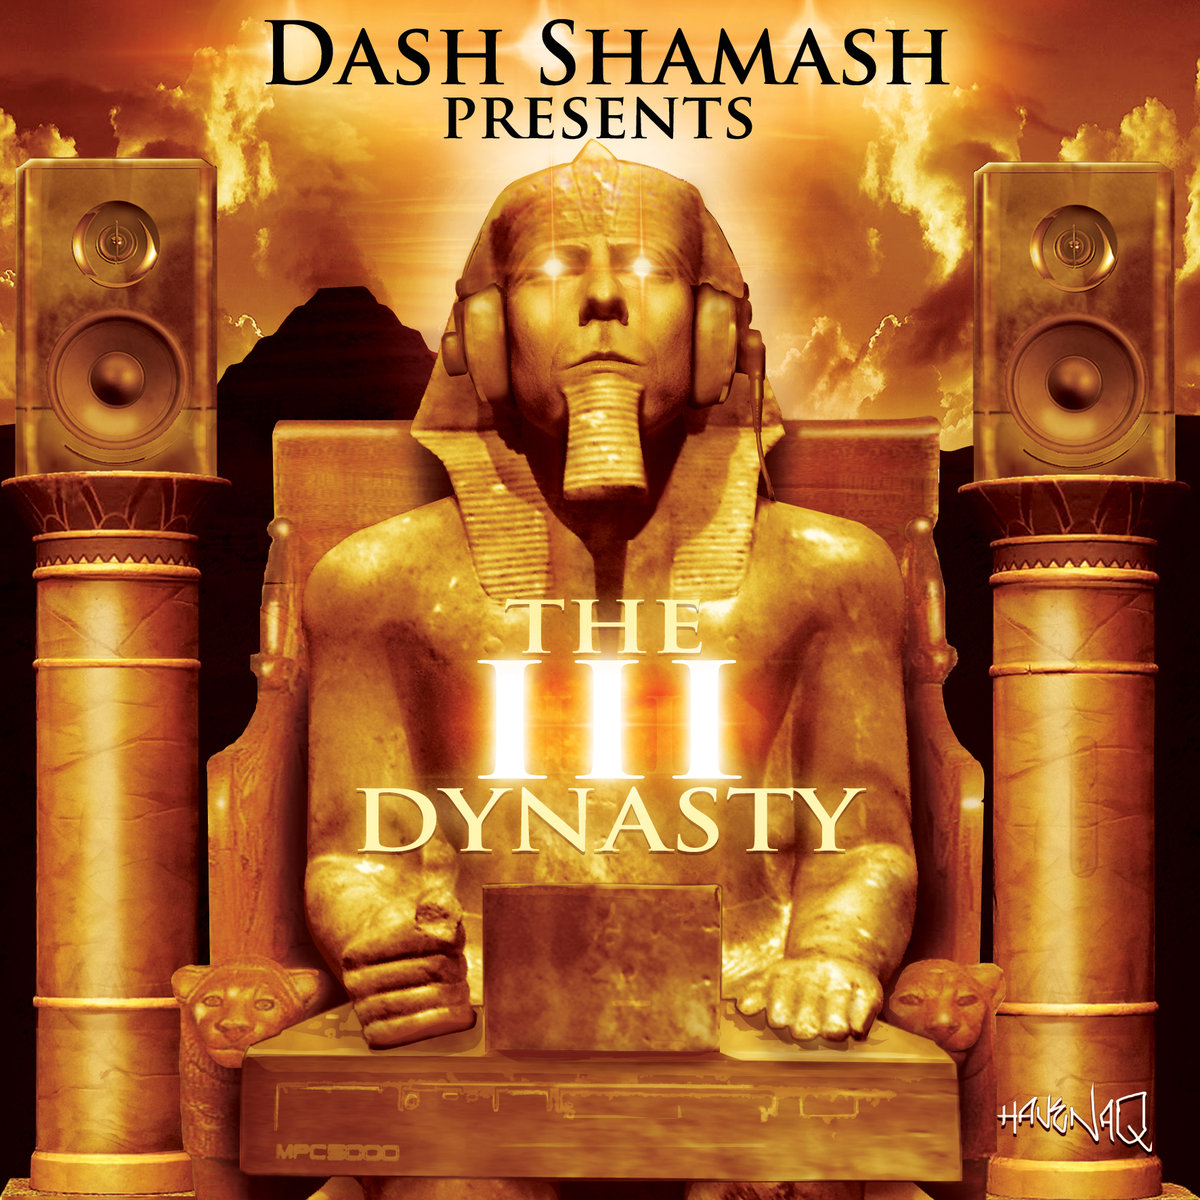 Dash Shamash - The III Dinasty